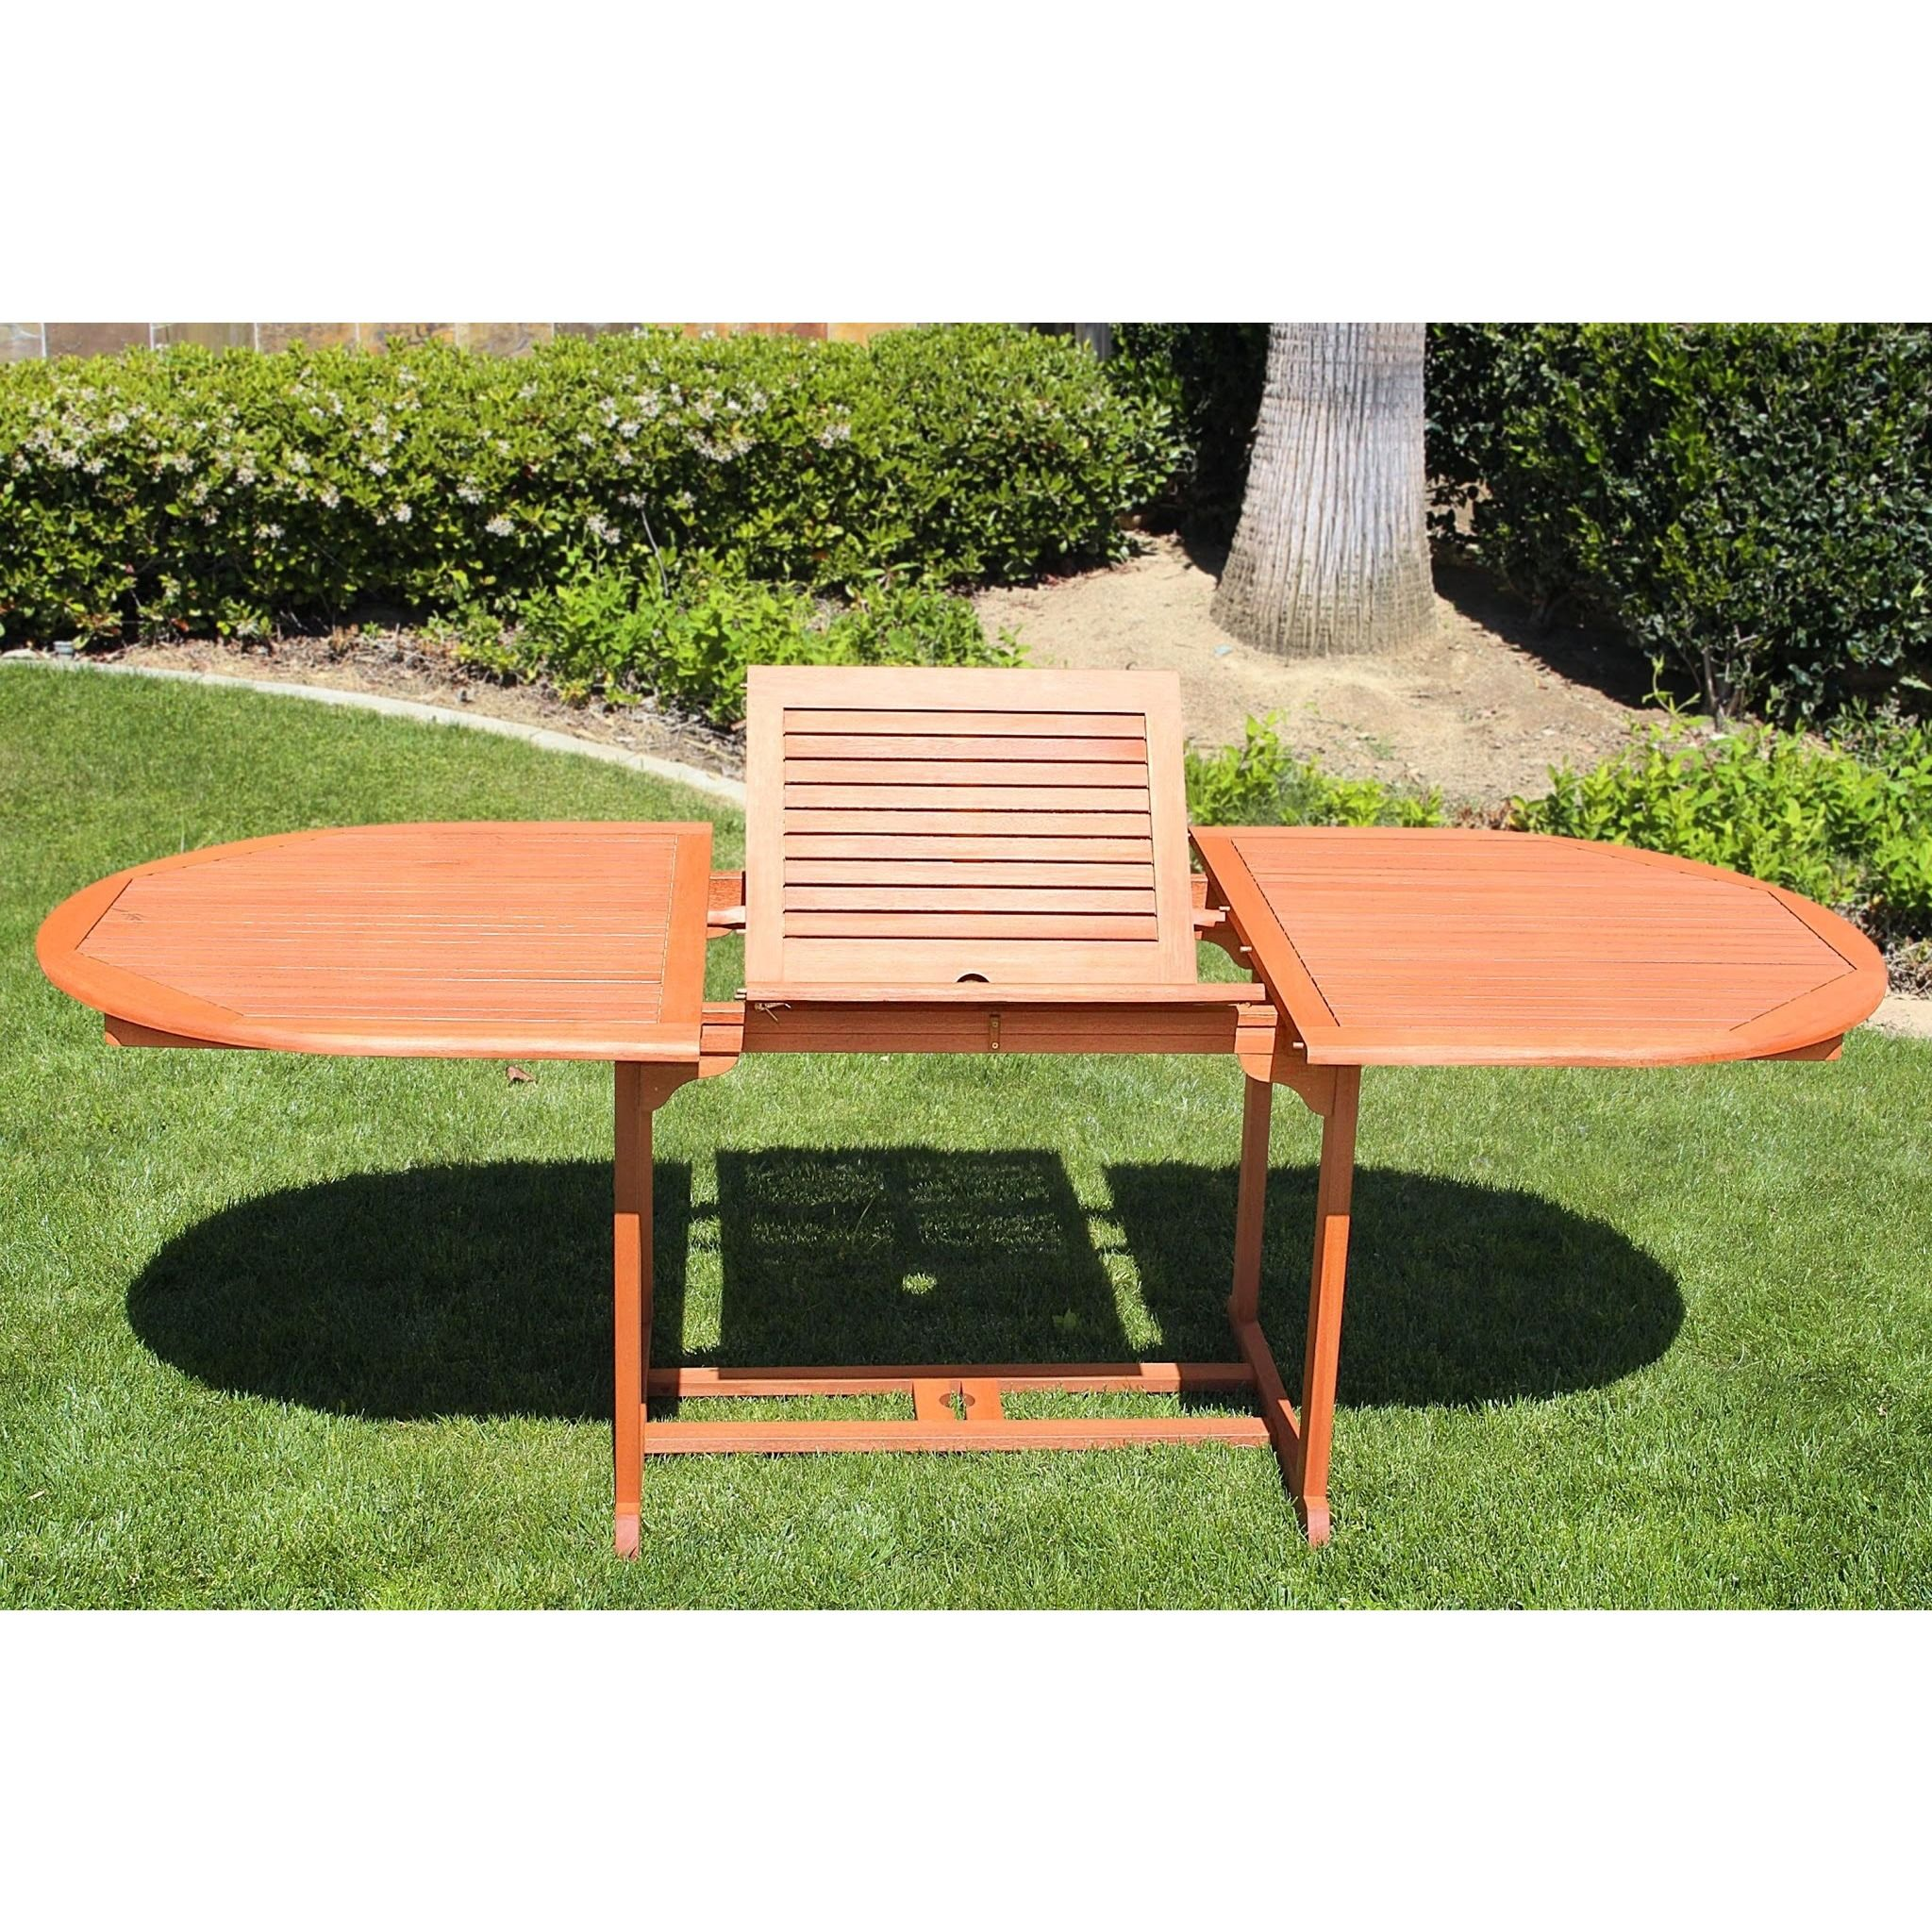 This beautiful oval folding table features a hidden leaf allowing